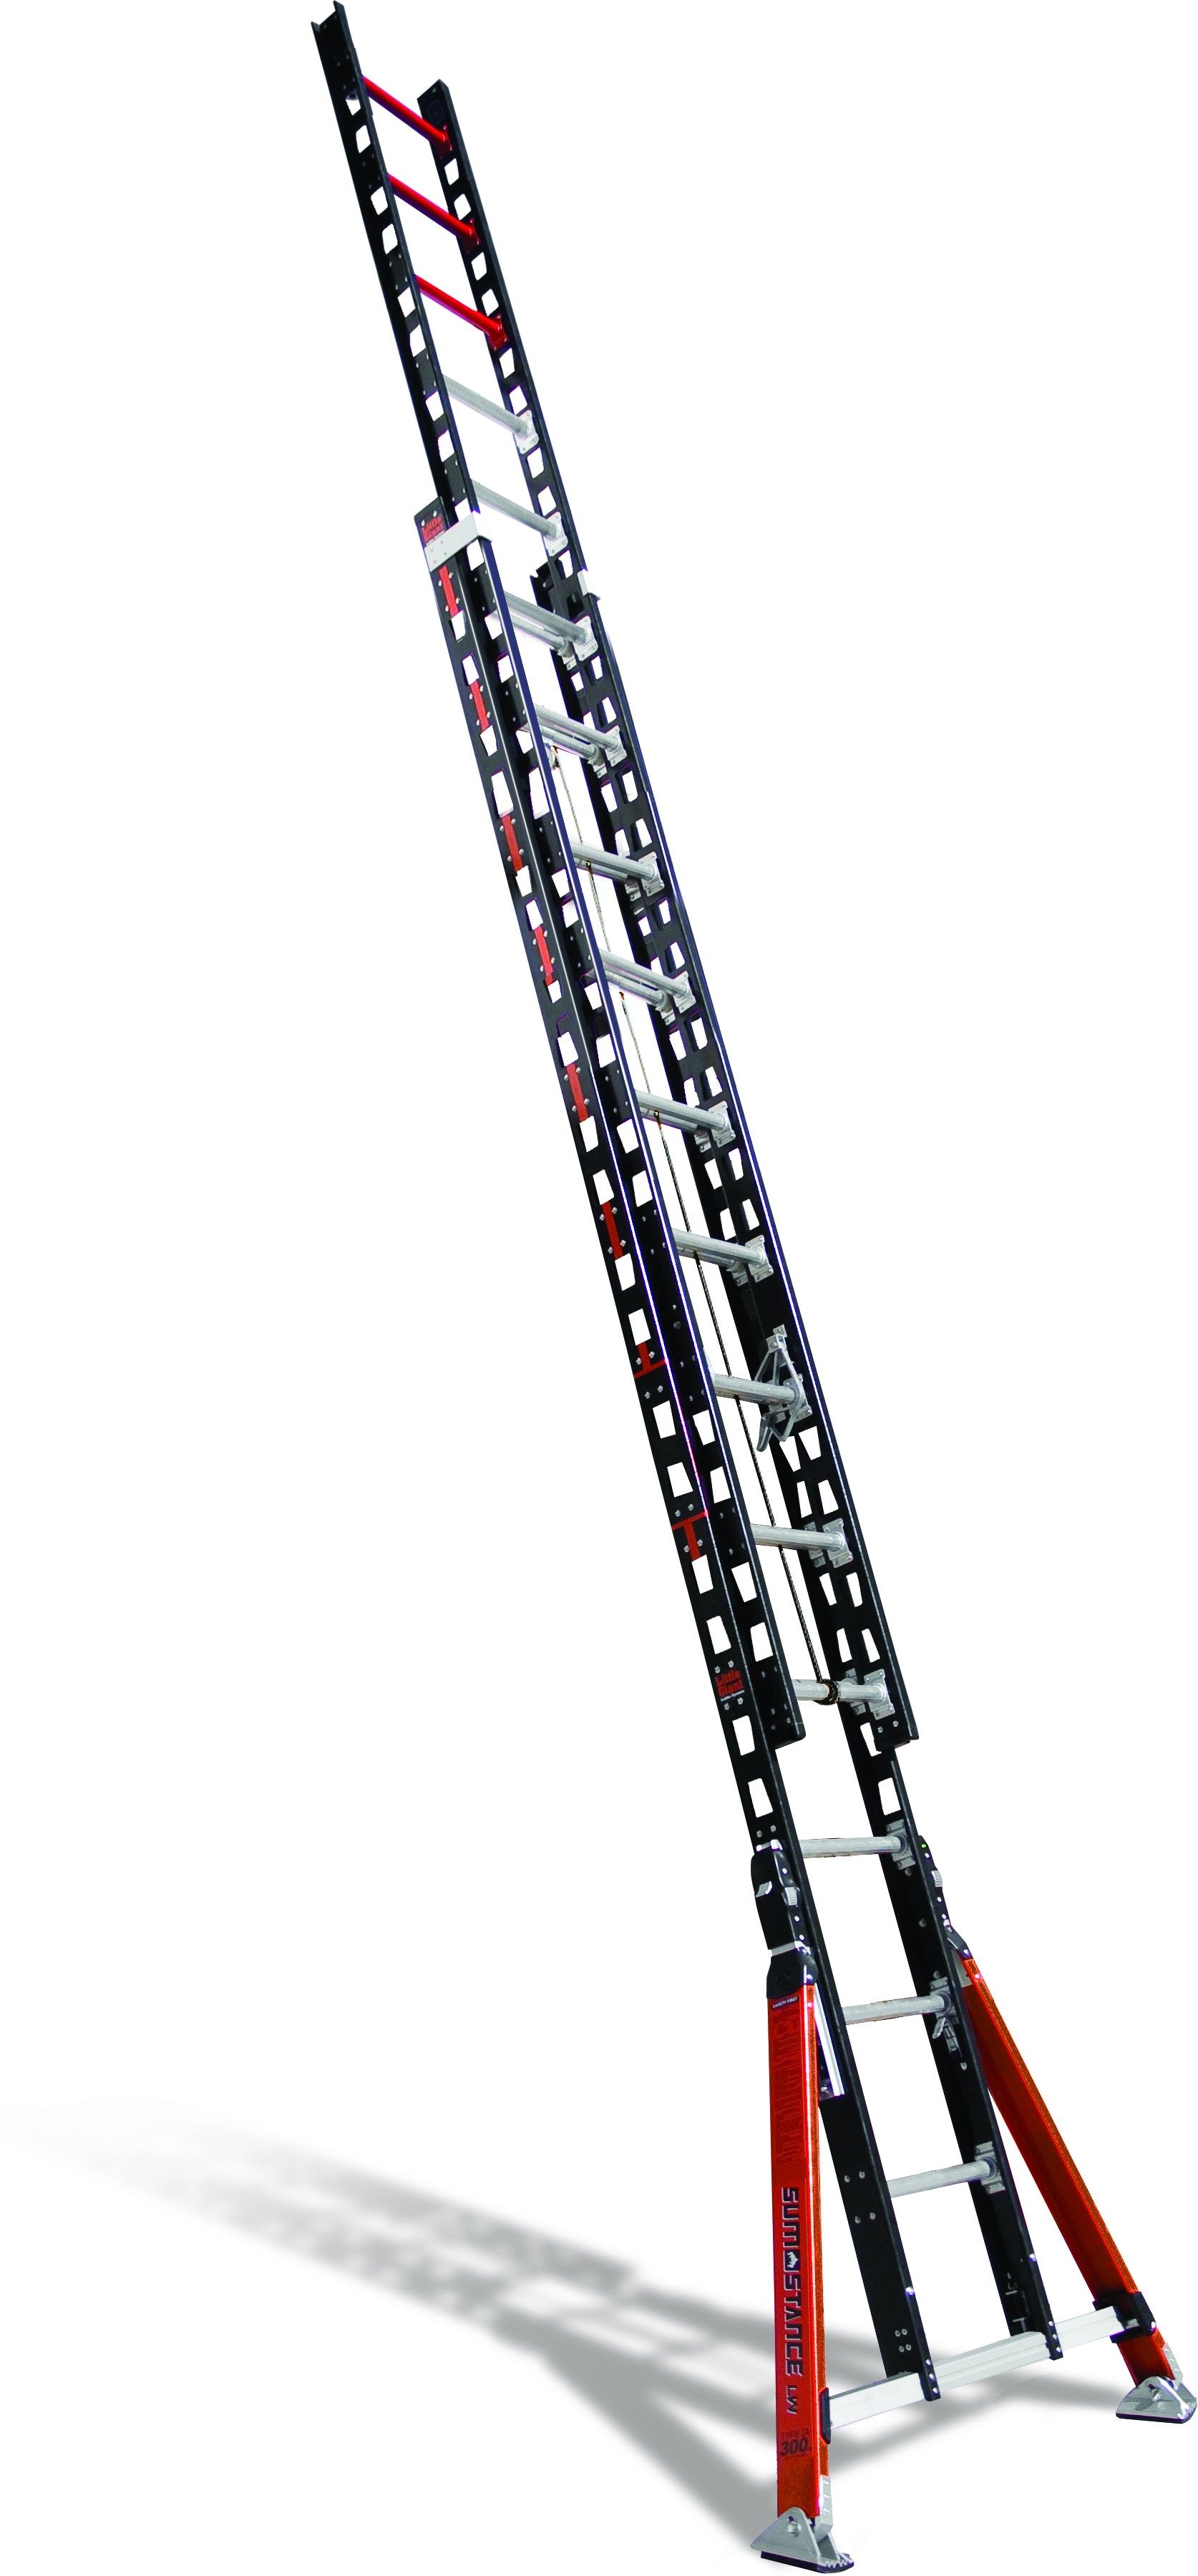 Calico Ladders Little Giant Ladders Sumostance 28ft F G